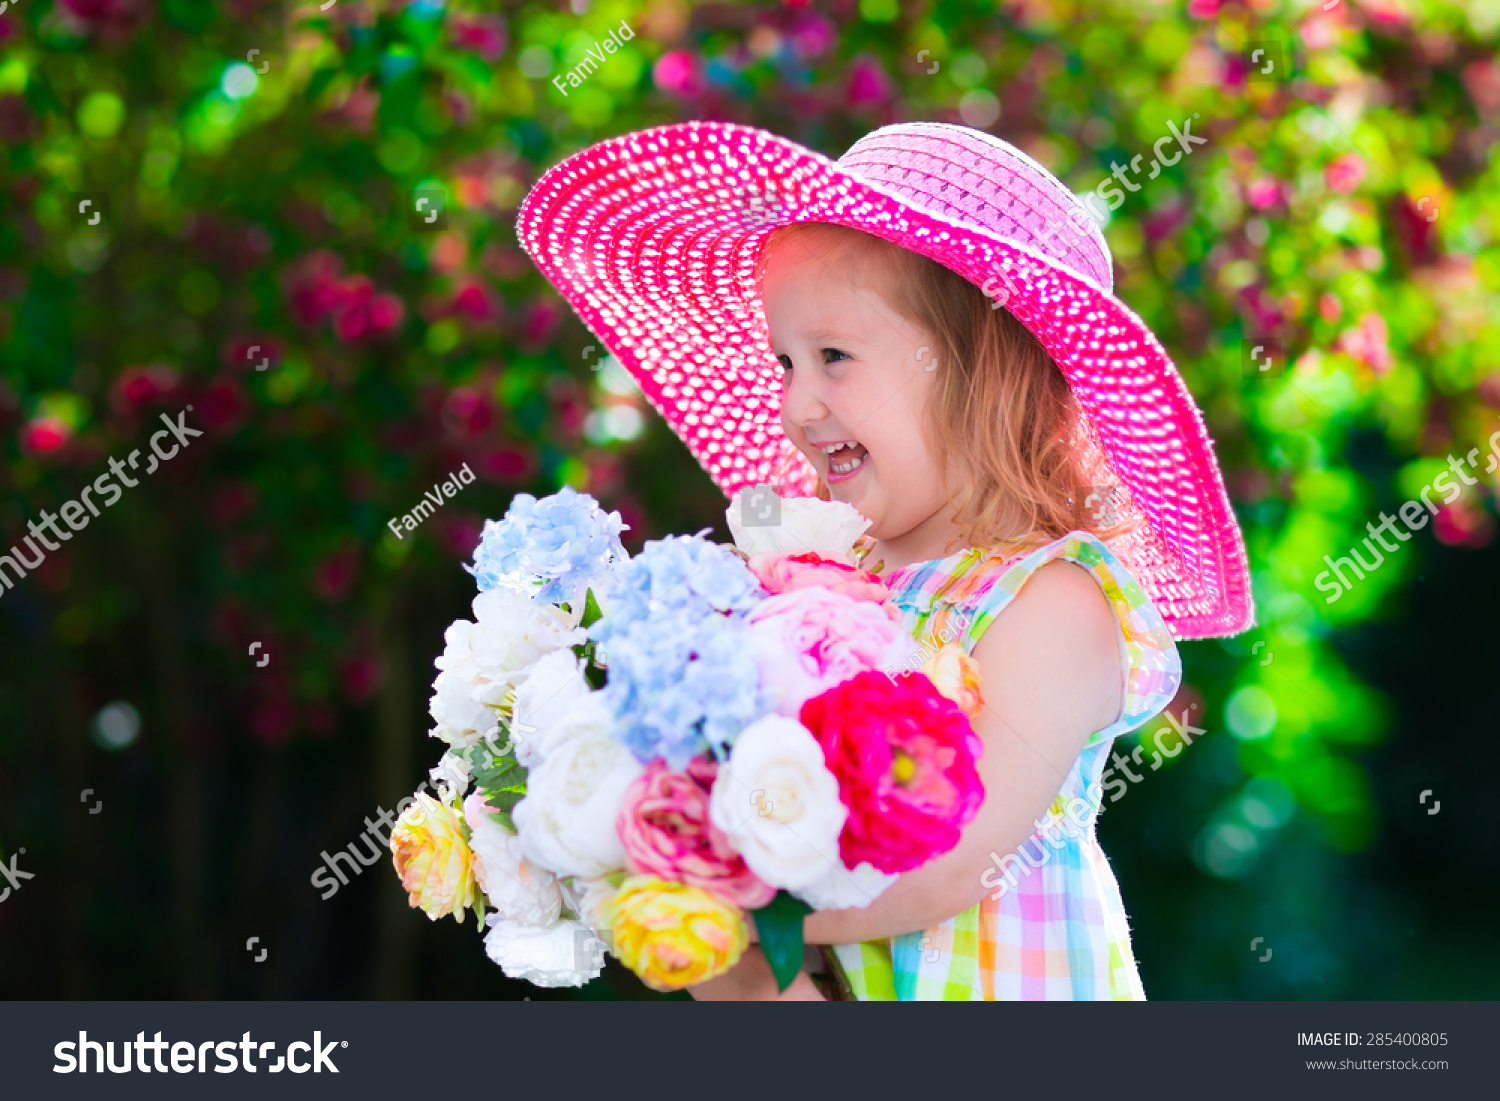 little cute girl flowers child wearing stock photo (edit now